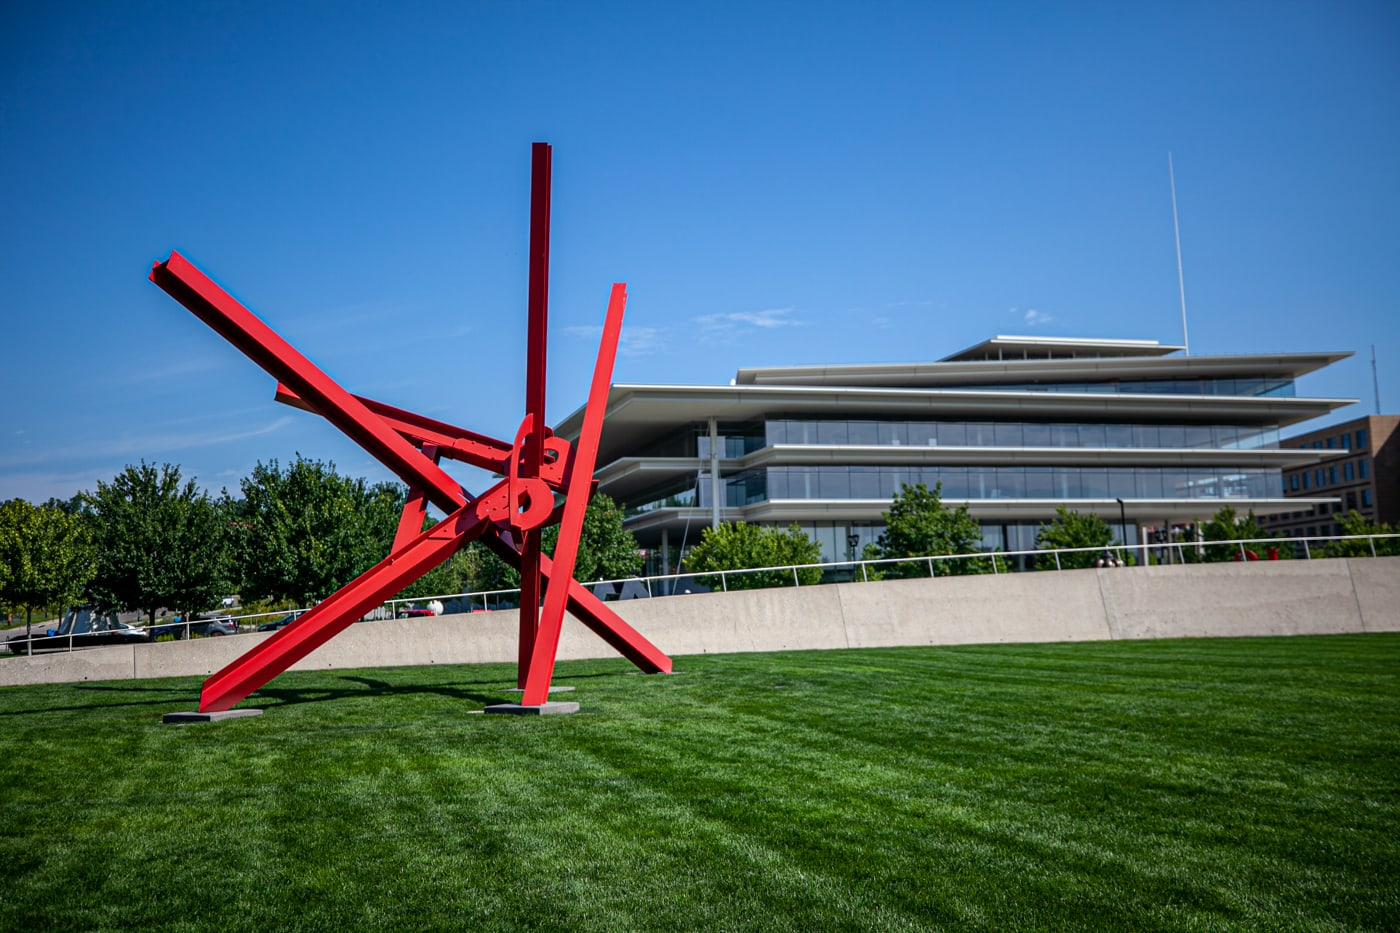 Mark di Suvero T8 | Pappajohn Sculpture Park in Des Moines, Iowa